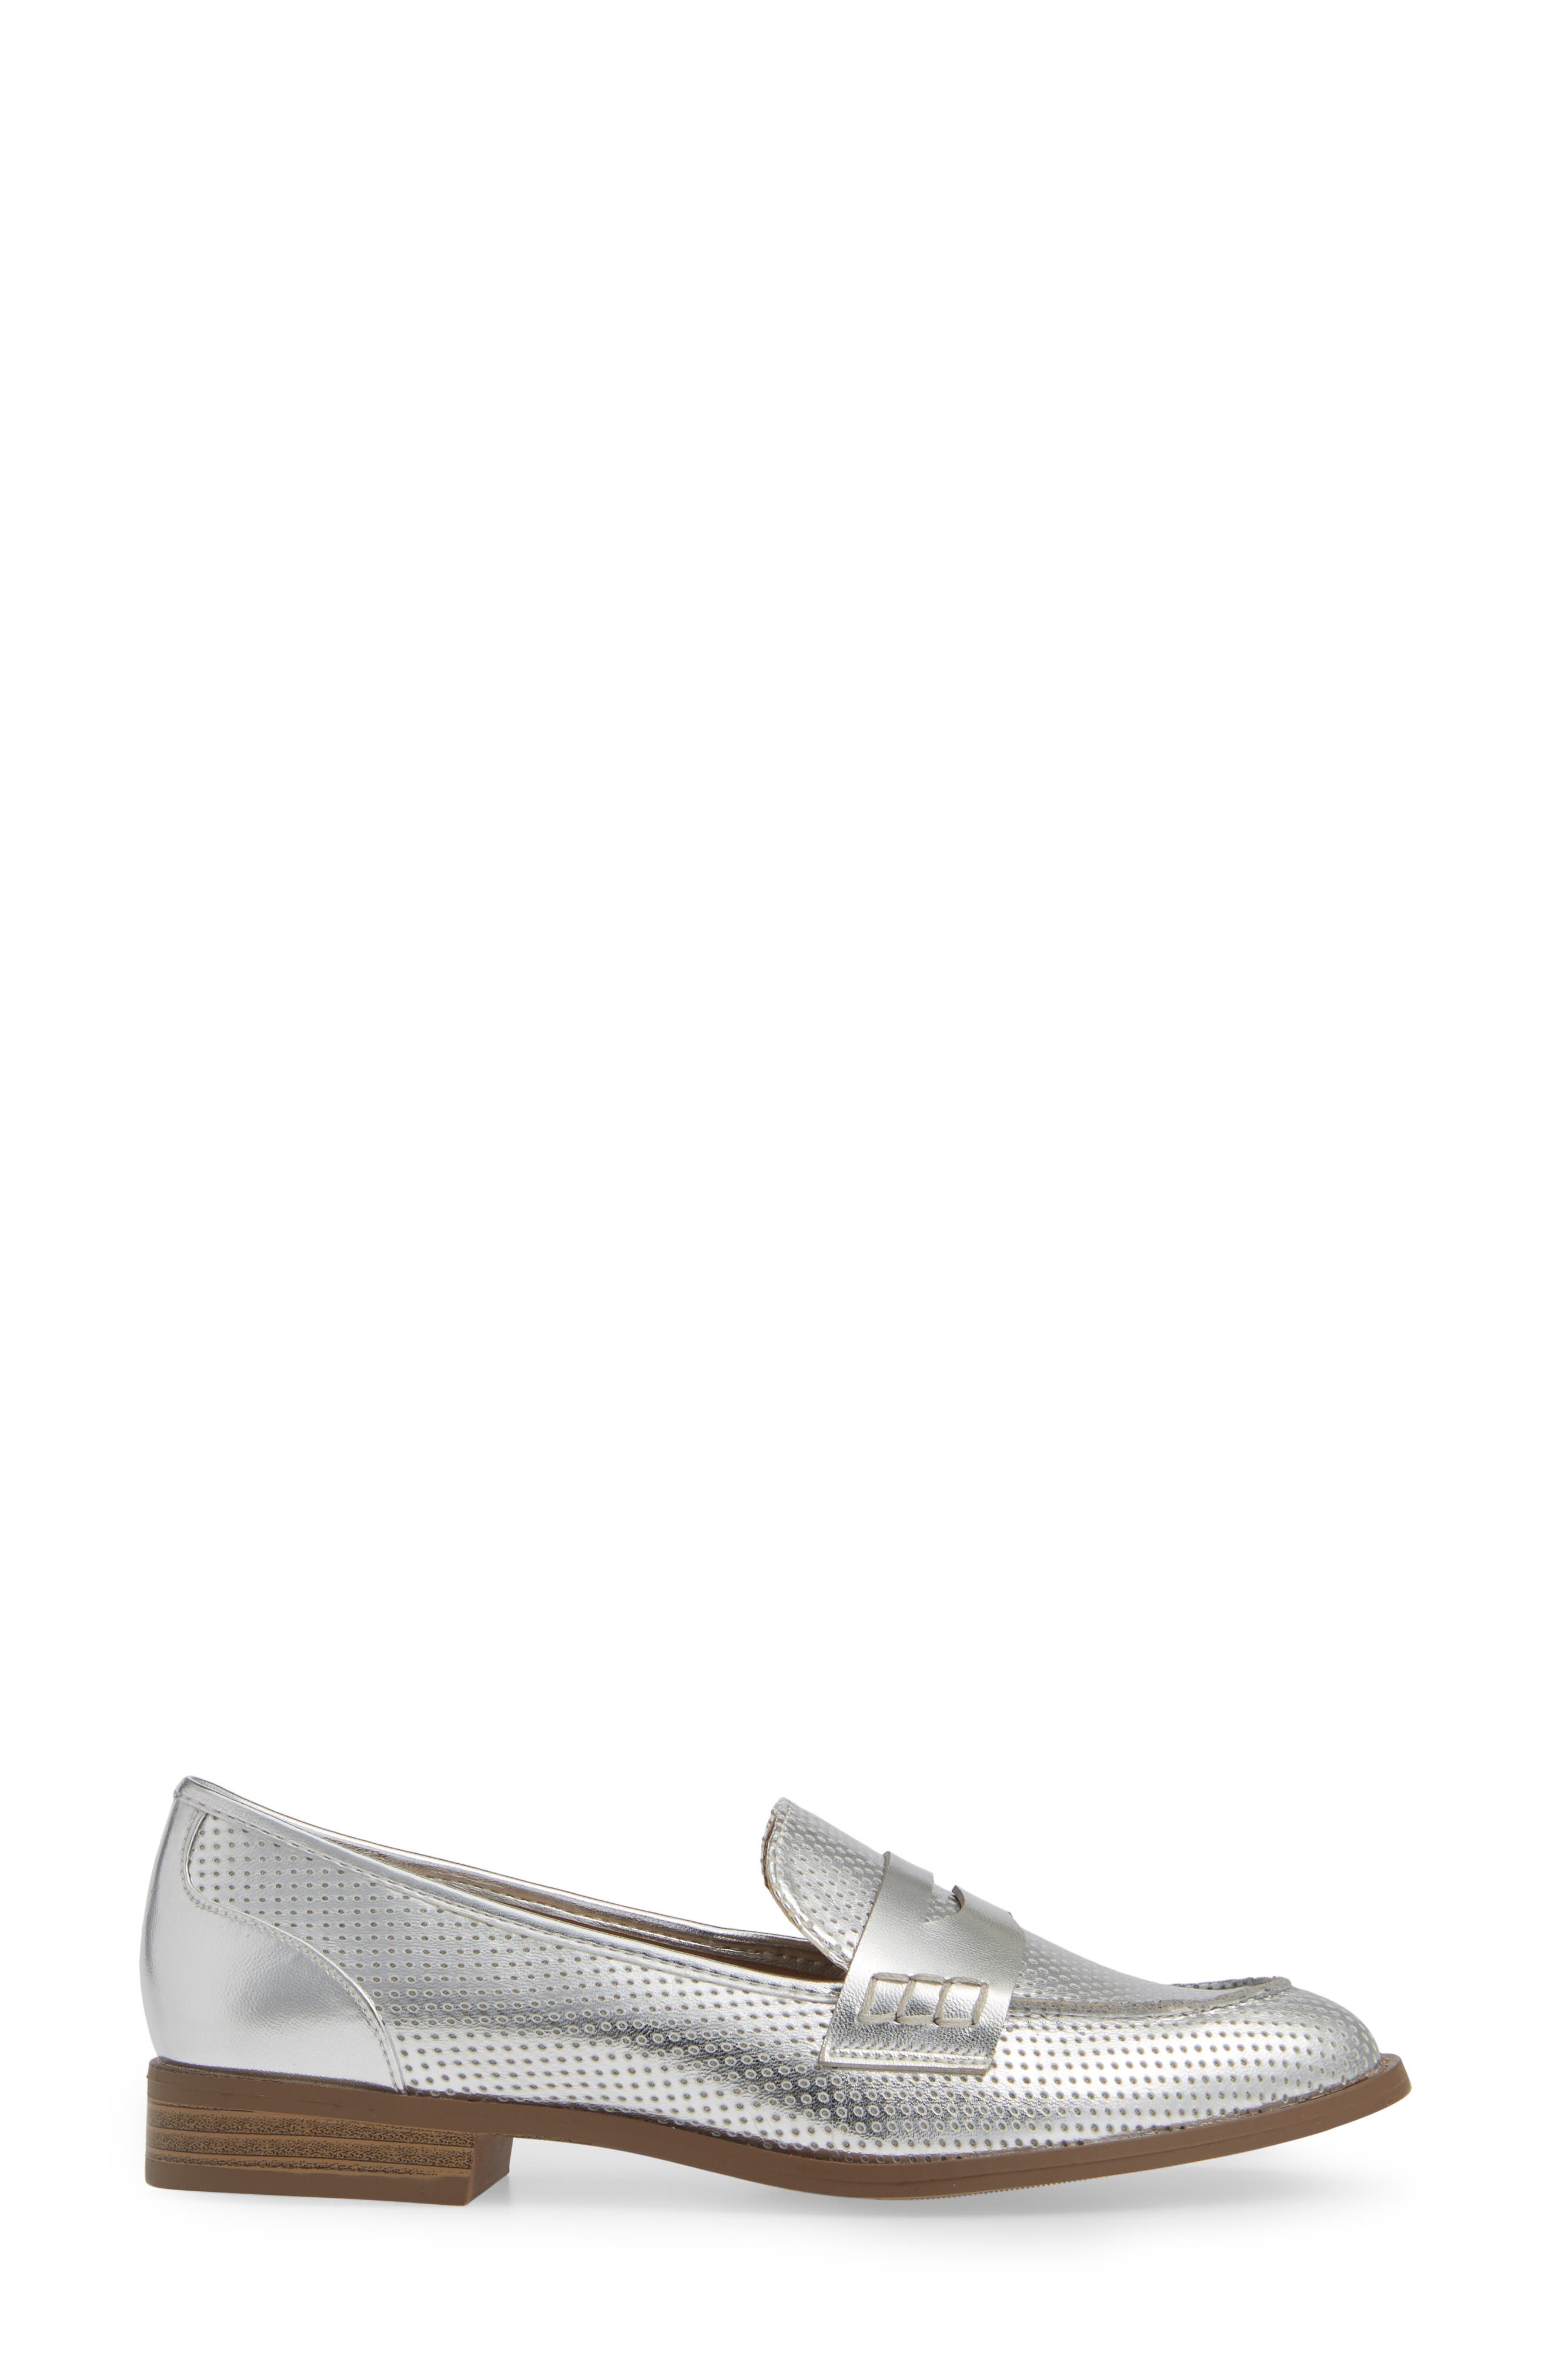 Lewis Loafer,                             Alternate thumbnail 3, color,                             SILVER